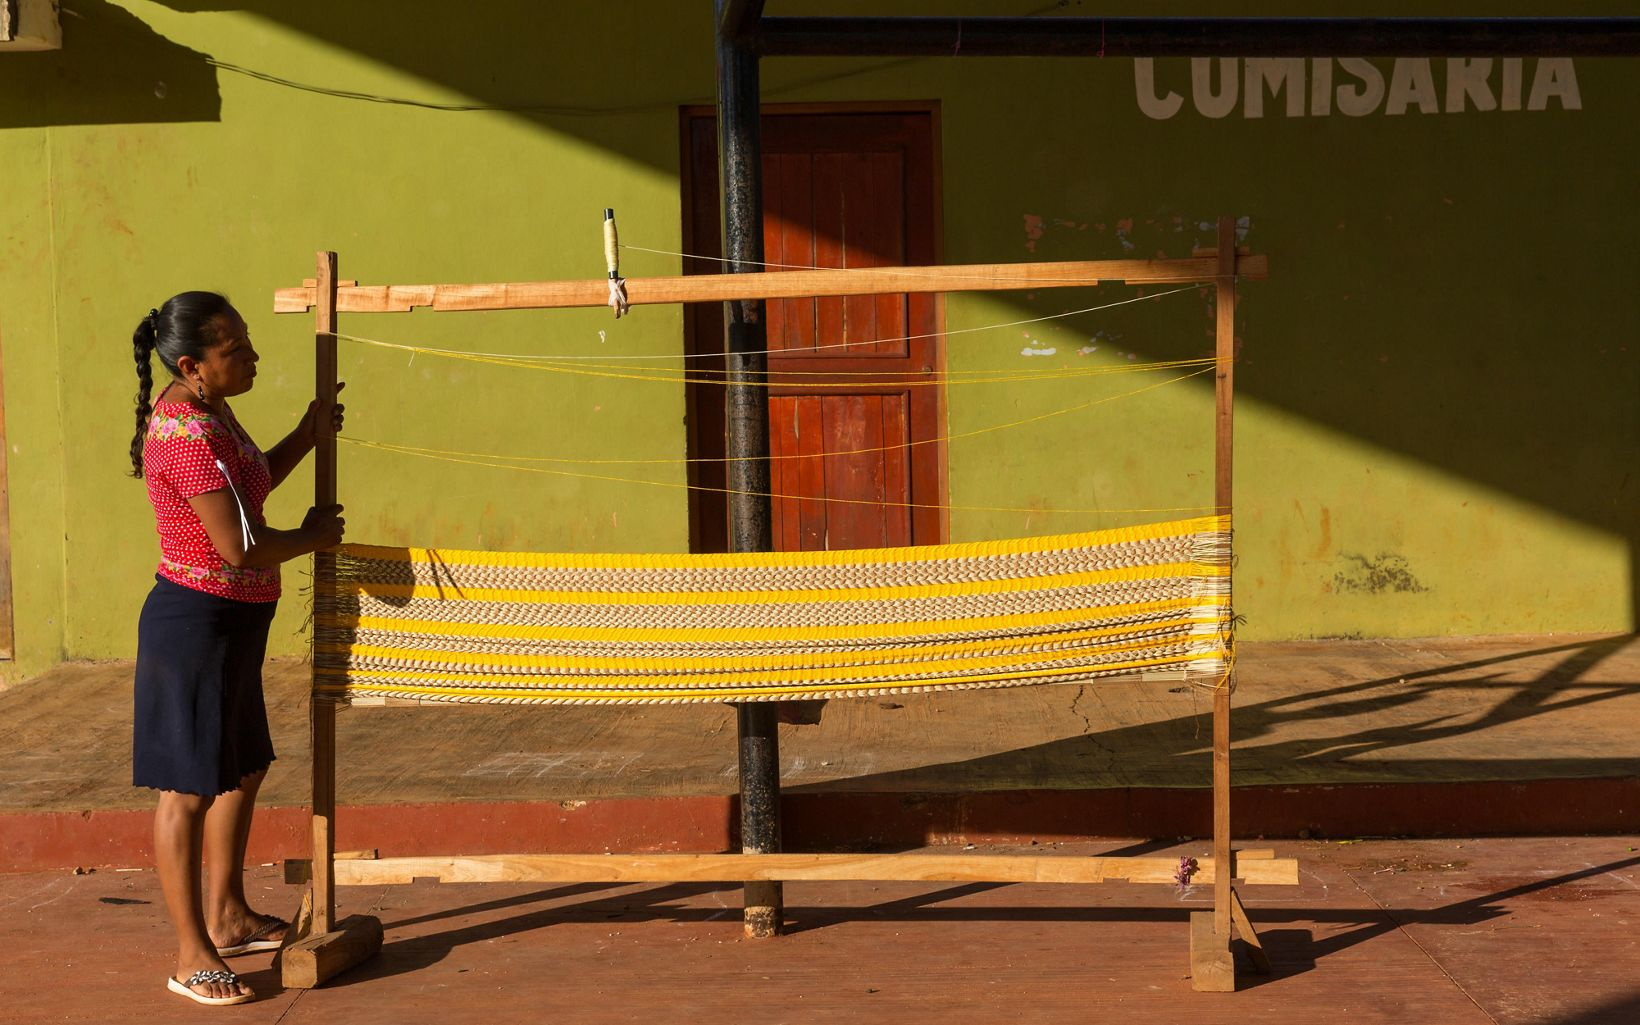 Rita Margarita Canul Ek of the women's hammock weaving cooperative that work every Friday under the covered basketball court in the ejido of San Agustin. The Nature Conservancy works with landowners, communities, and governments in Mexico to promote low-carbon rural development through the design and implementation of improved policy and practice in agriculture, ranching, and forestry. The Conservancy is leading the initiative, Mexico REDD+ Program in conjunction with the Rainforest Alliance, the Woods Hole Research Center, and Espacios Naturales y Desarrollo Sustentable.